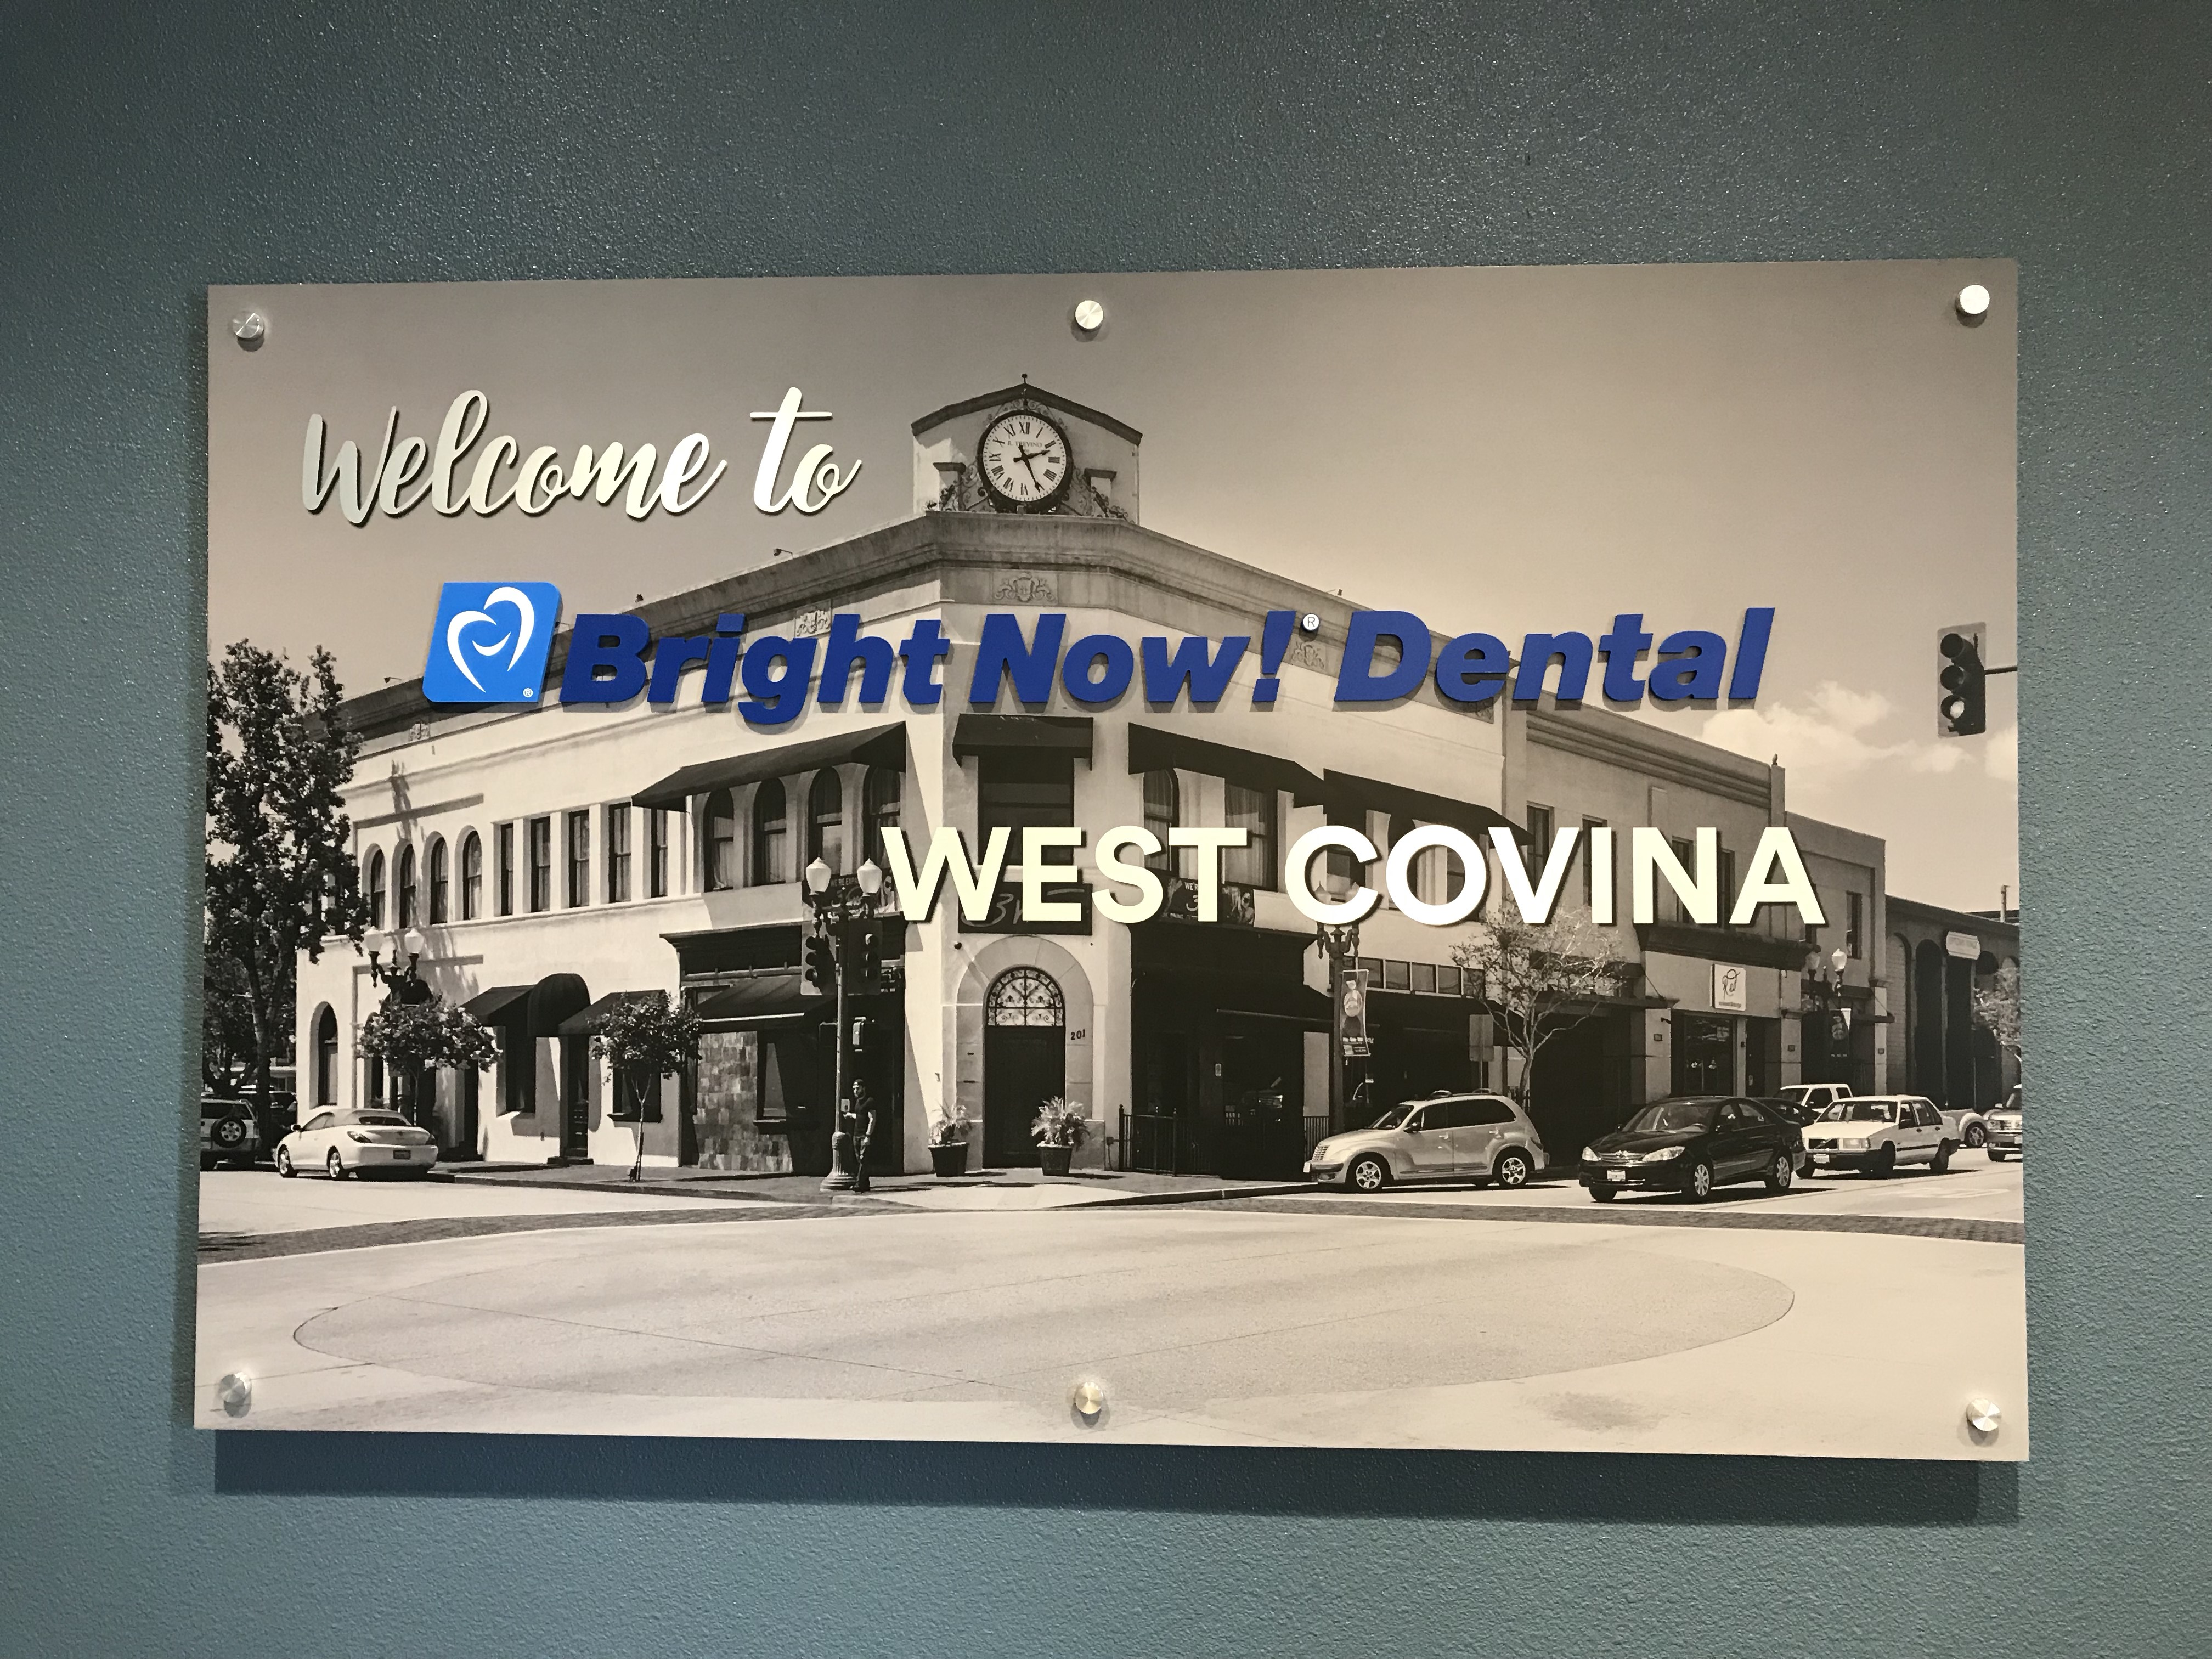 Bright Now! Dental West Covina Opens in a New Location